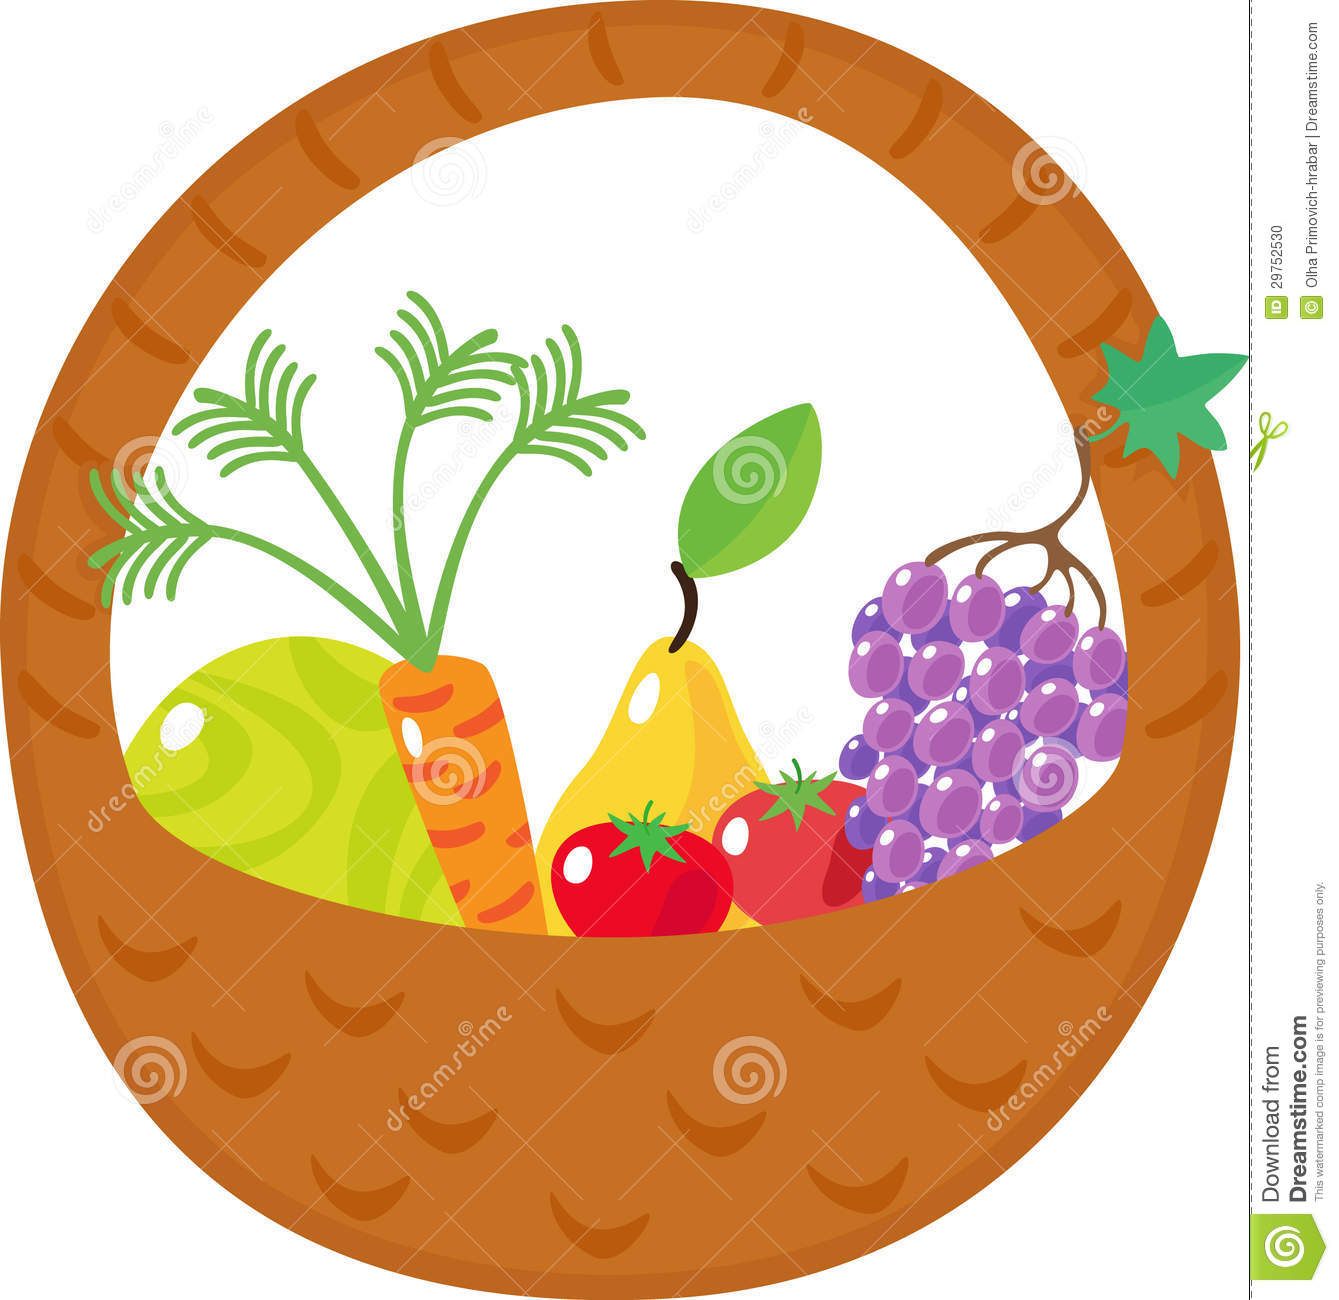 Basket With Cabbage, Carrots, Grapes, Pears, Tomat Stock Photo.